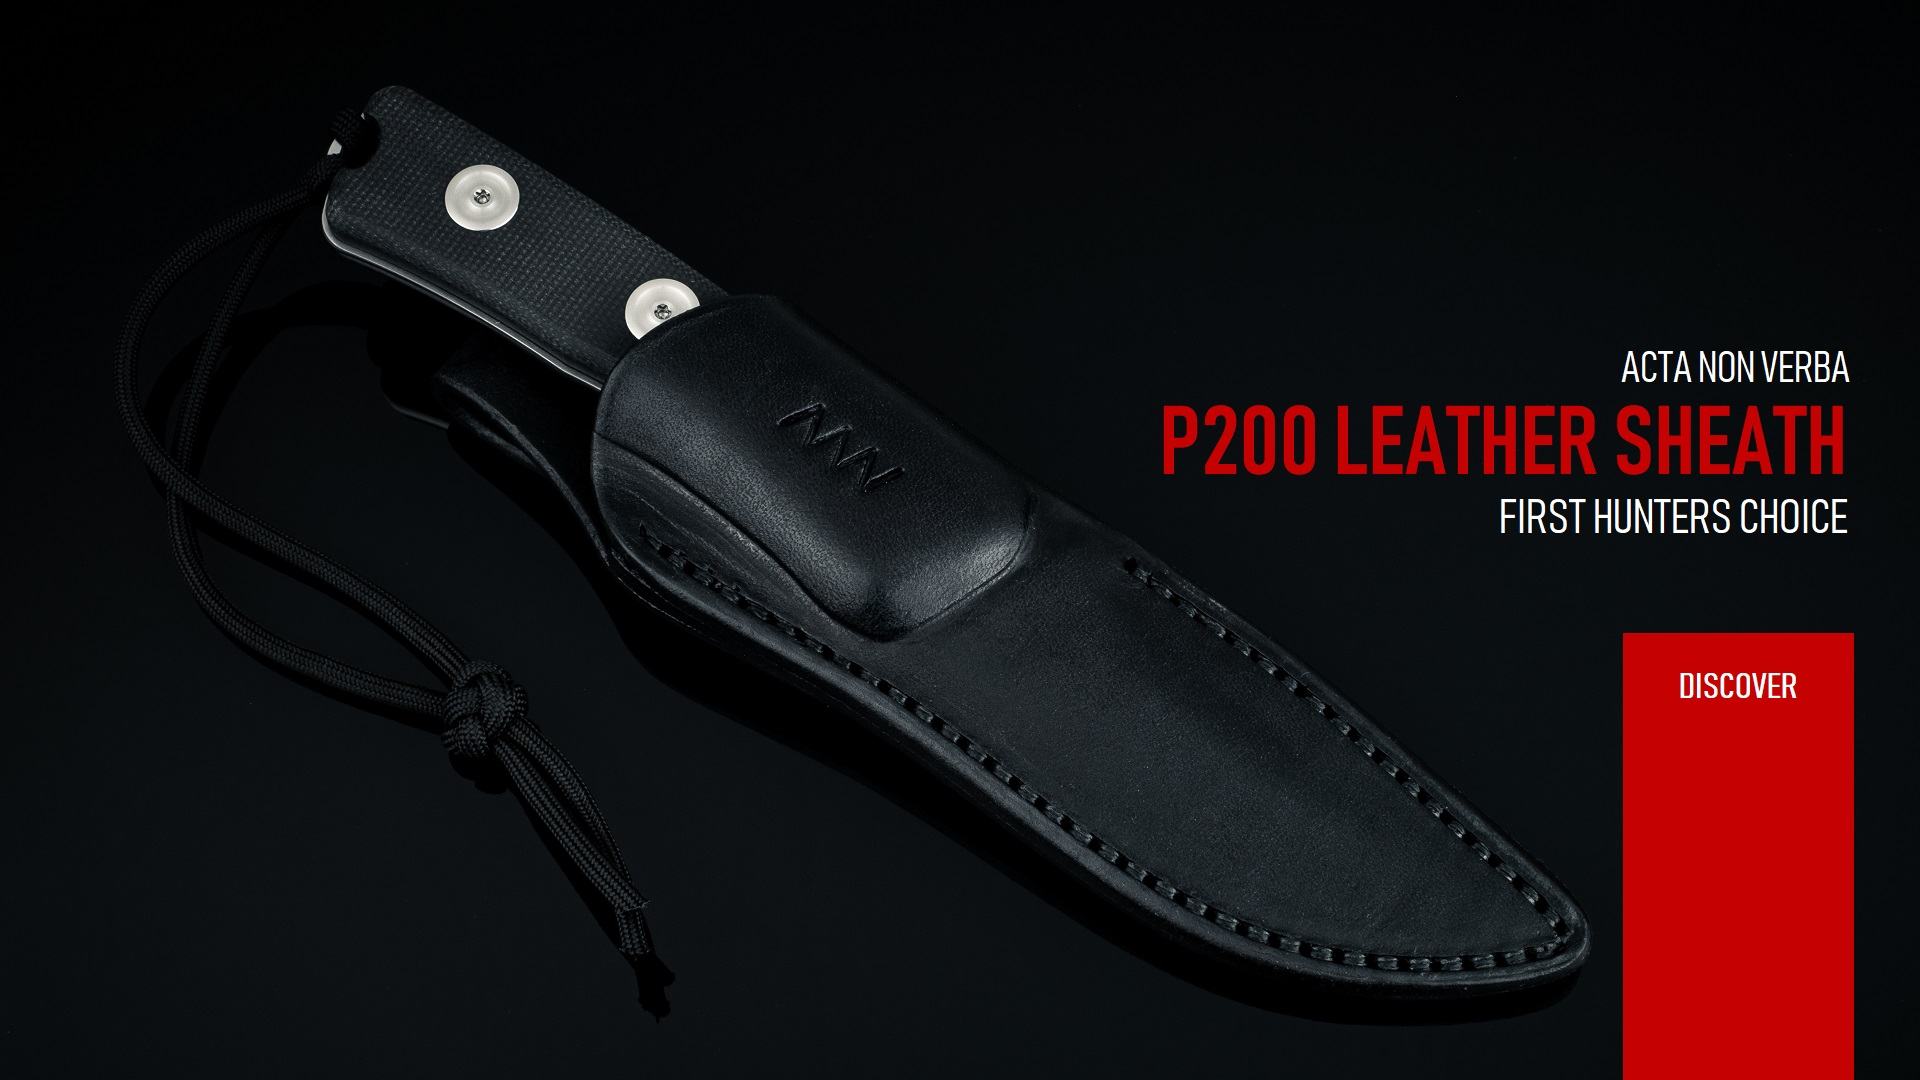 Discover P200 series